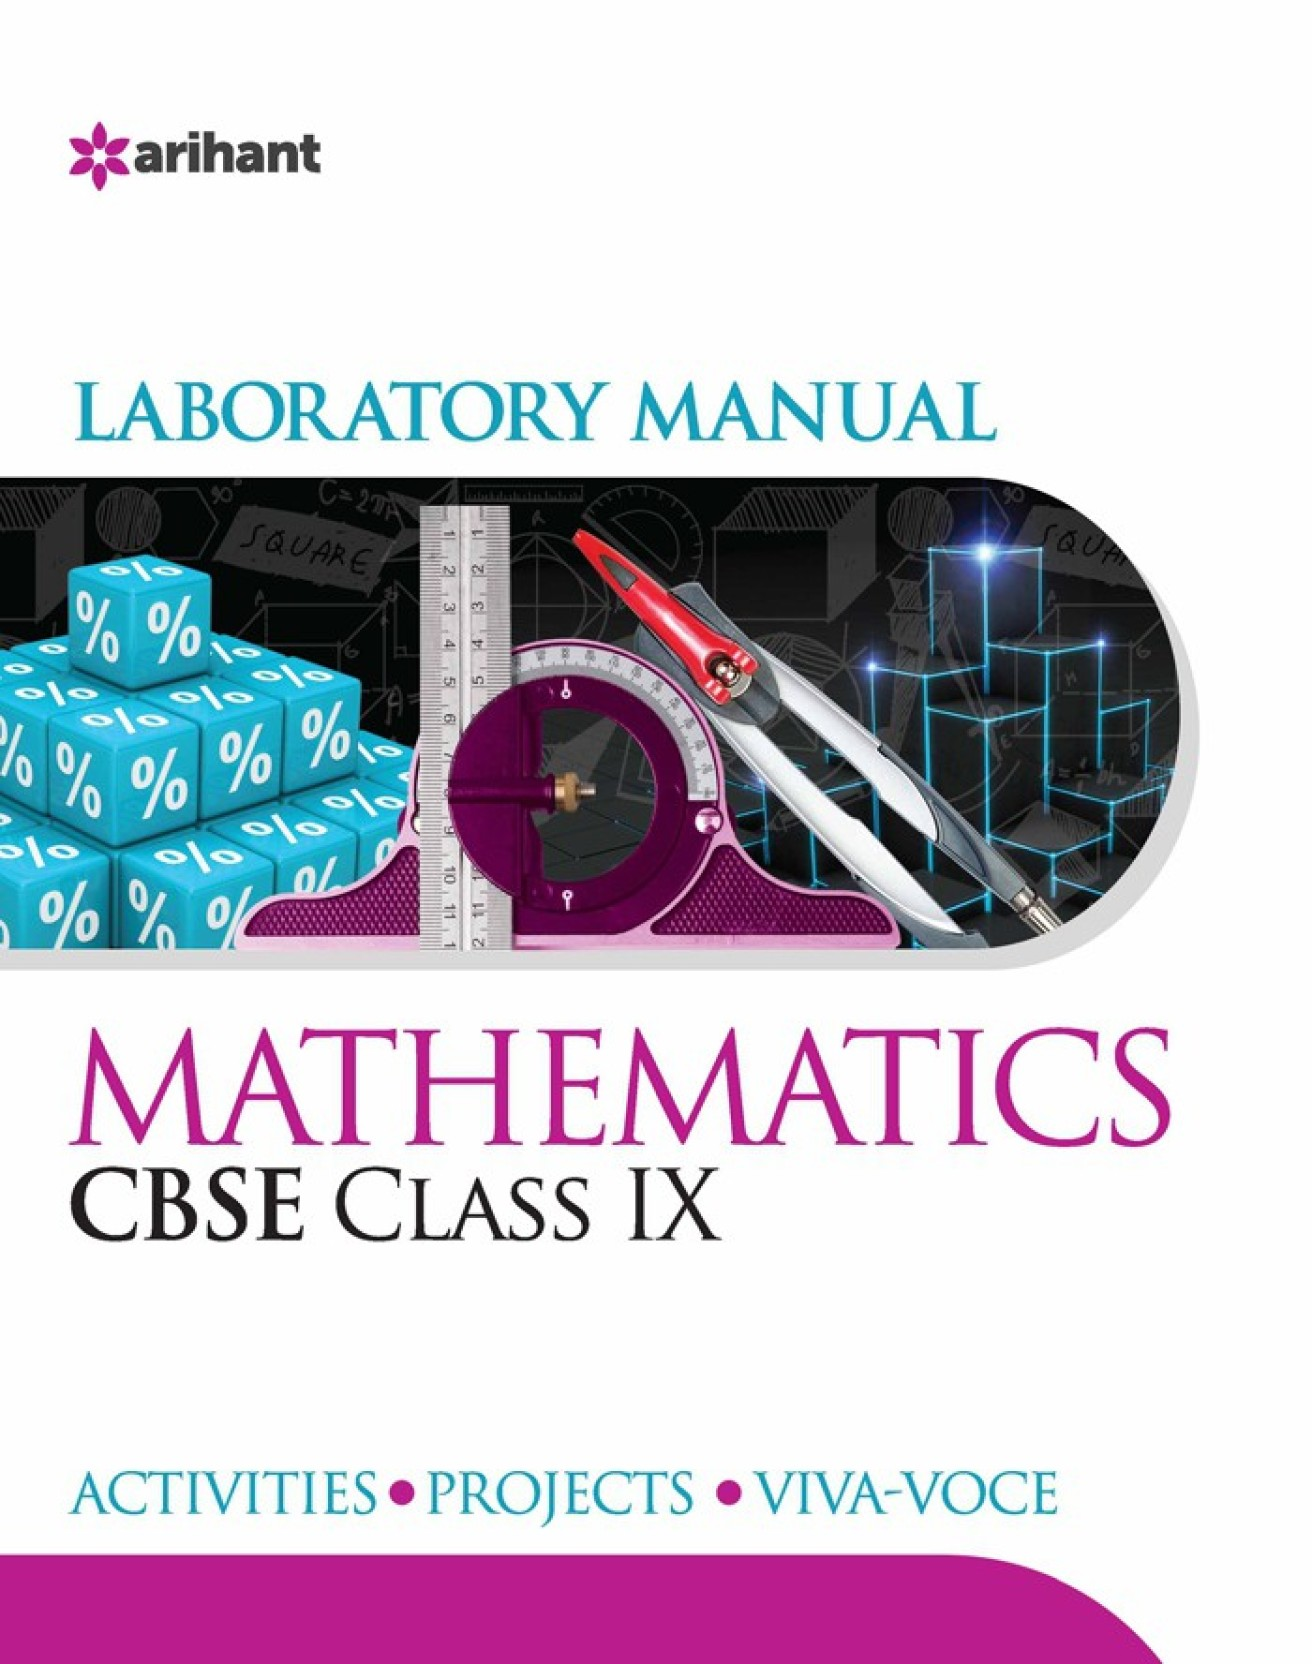 CBSE Mathematics Laboratory Manual for Class IX : Includes Activities,  Projects and Viva - Voce. ADD TO CART